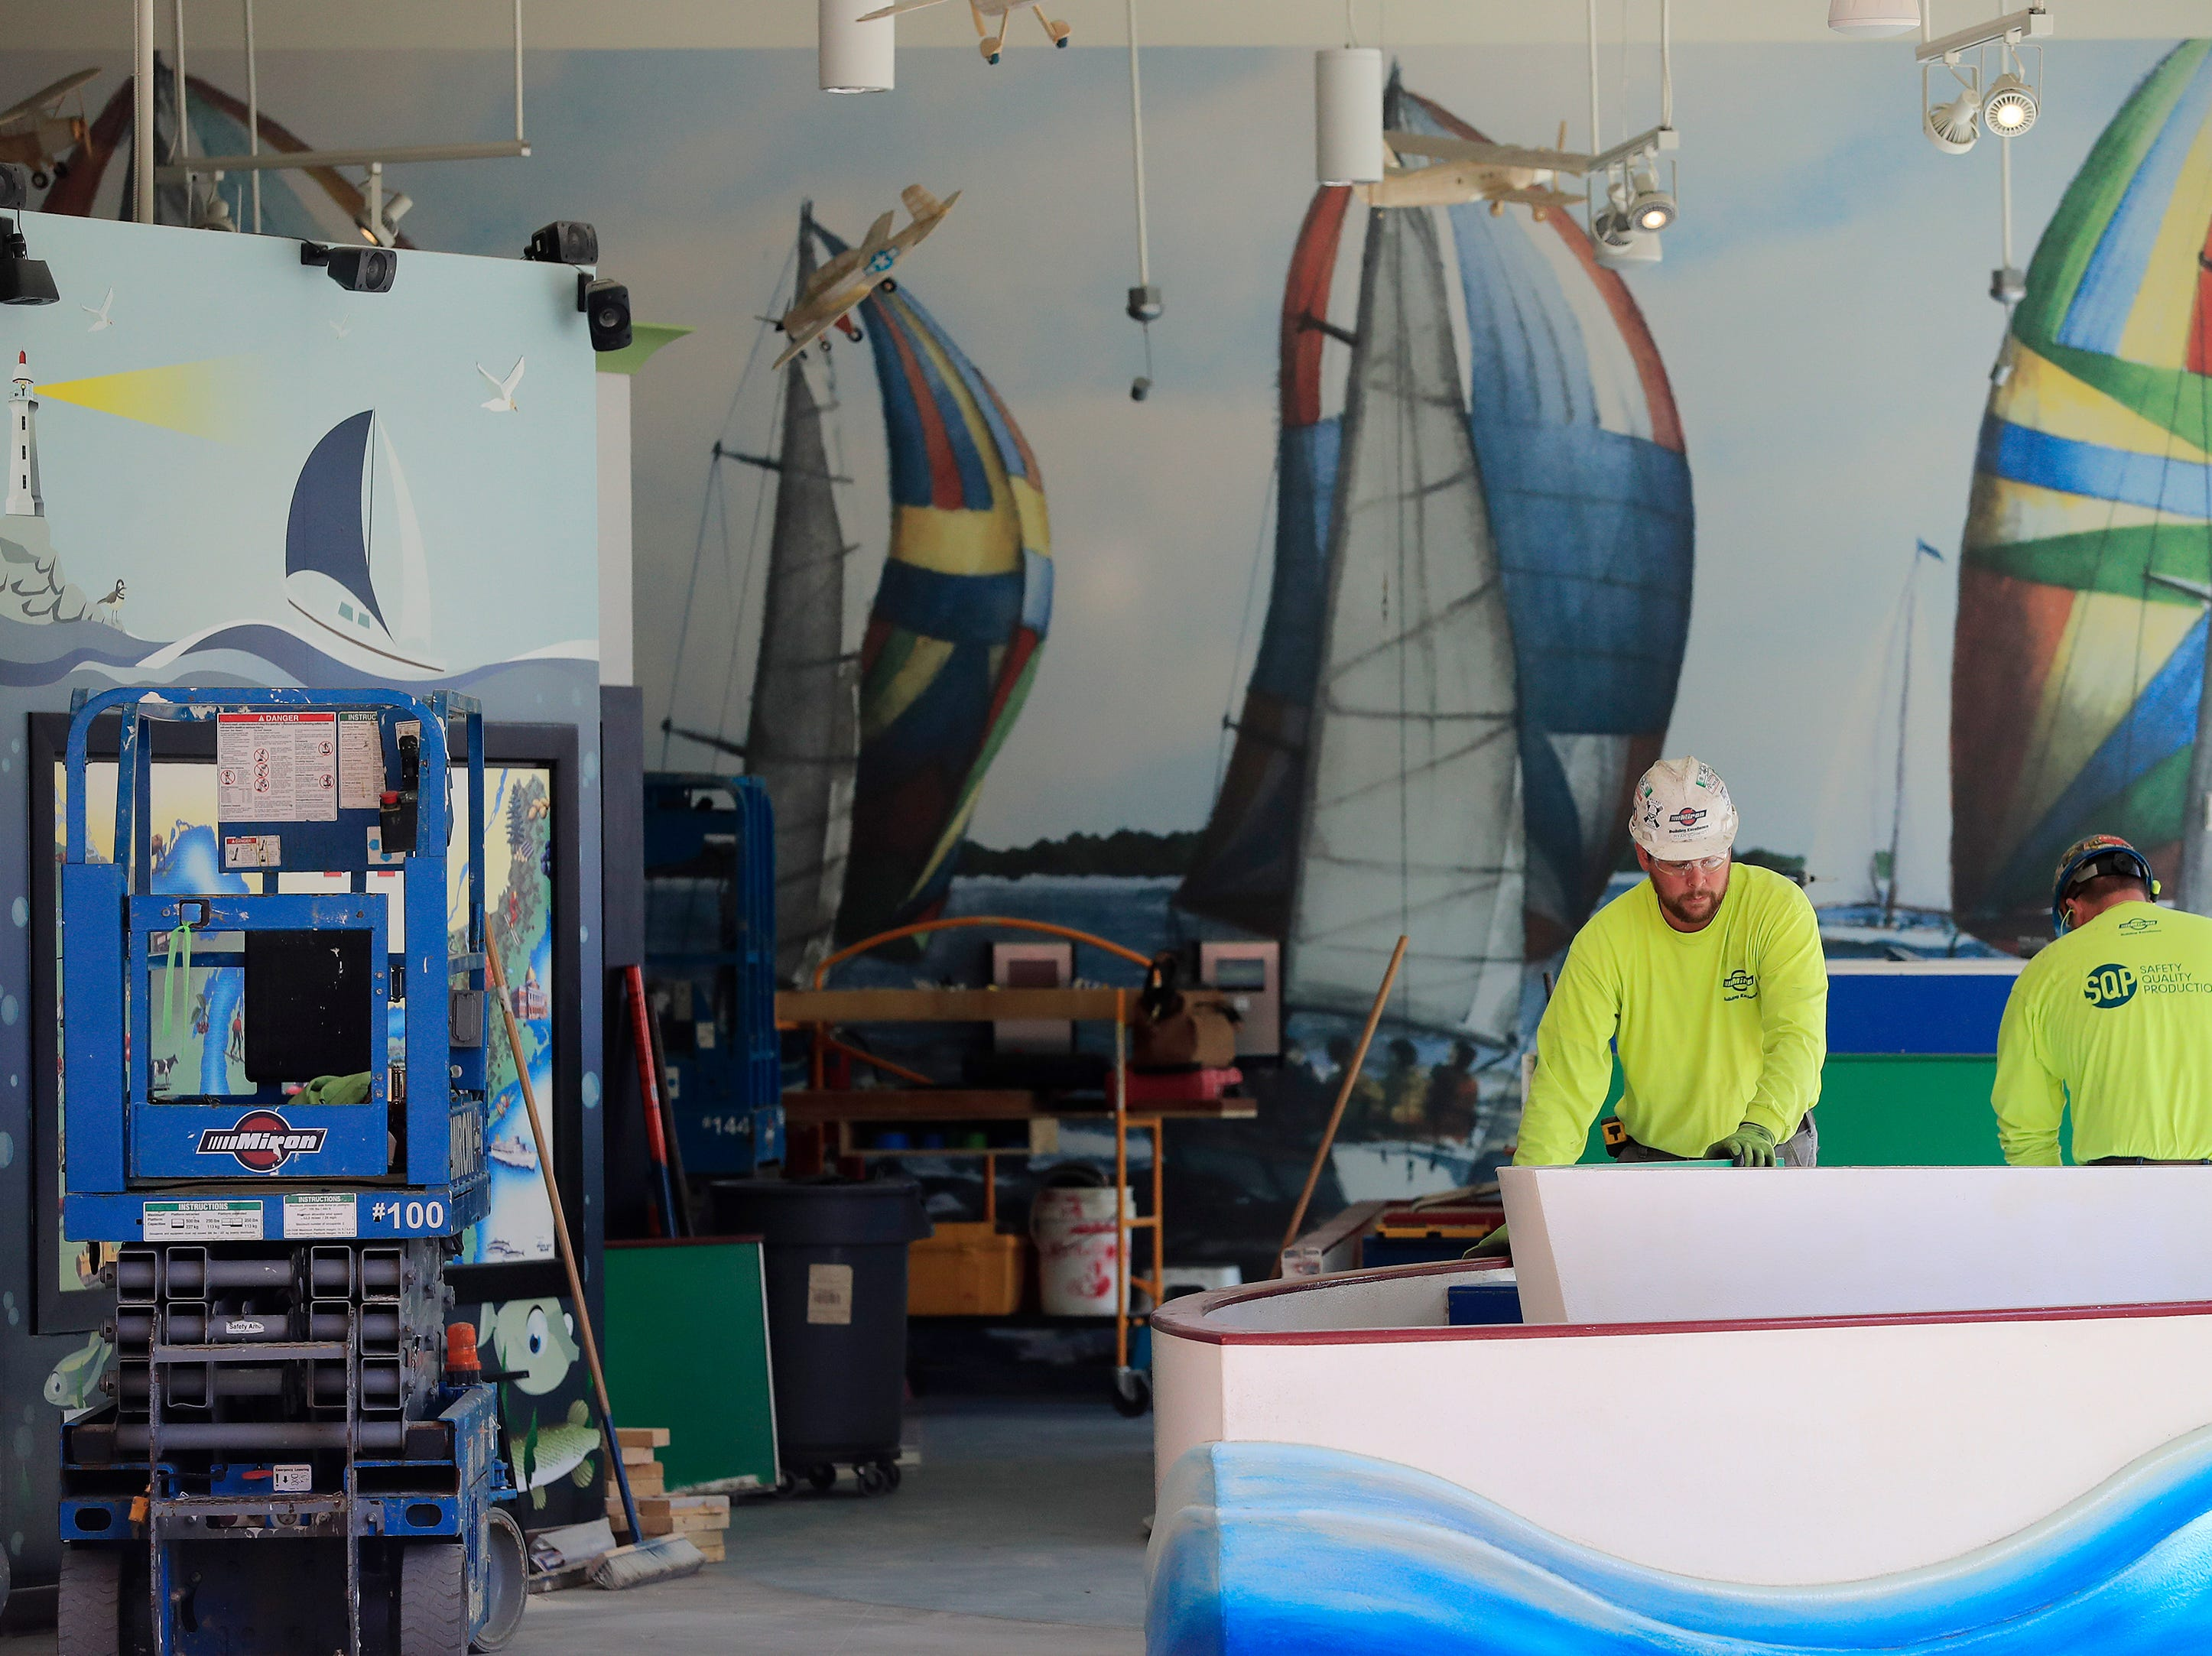 Workers move a boat exhibit out of the Children's Museum of Green Bay on Tuesday, April 23, 2019 in Green Bay, Wis. The museum is moving from its downtown location and will reopen in its new facility near Bay Beach Amusement Park in early May.